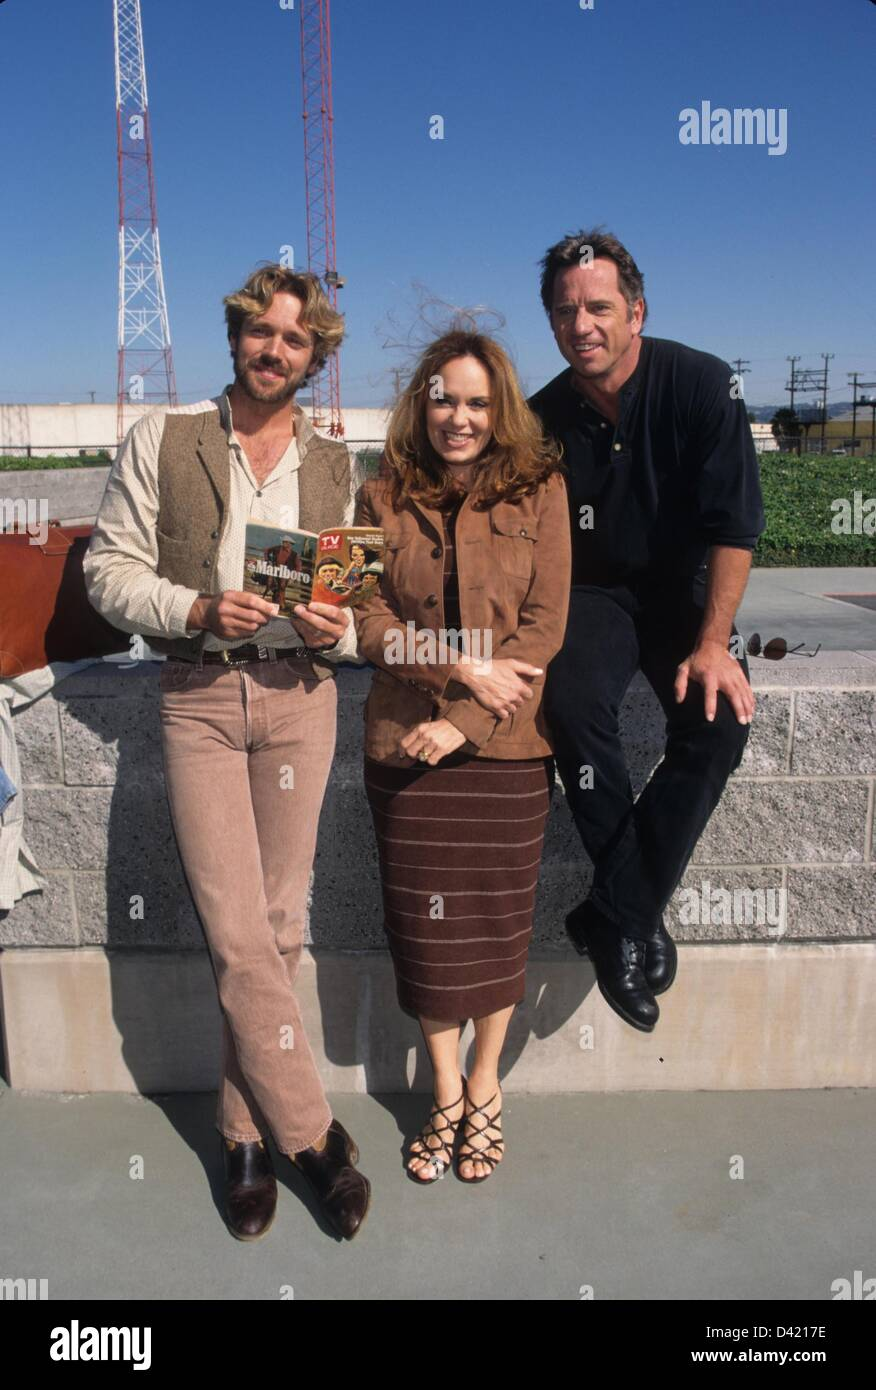 catherine bach with john schneider and tom wopat dukes of hazzard